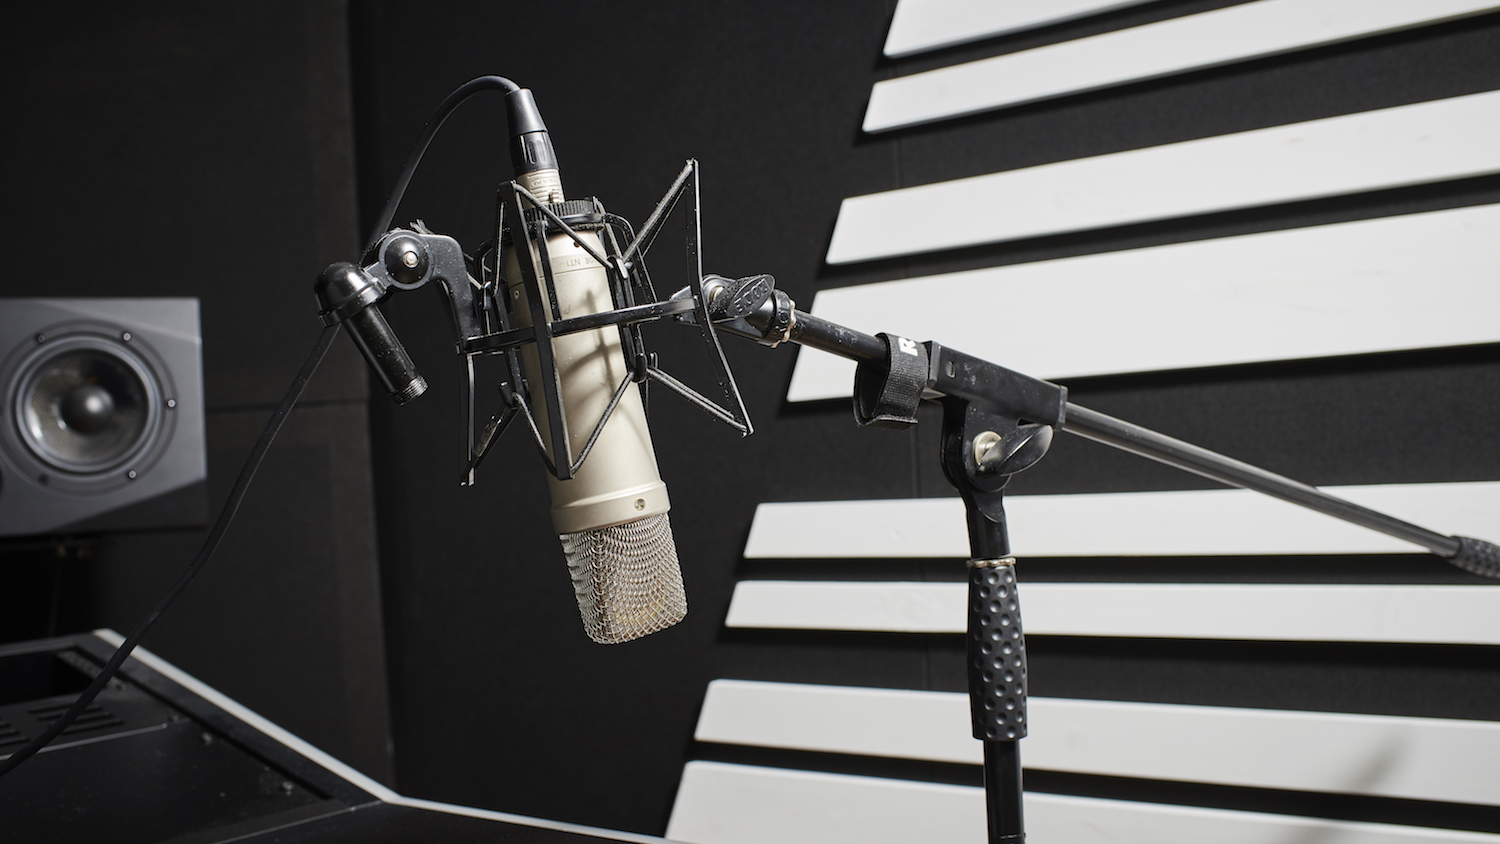 13 best microphones 2020: our pick of the best mics for